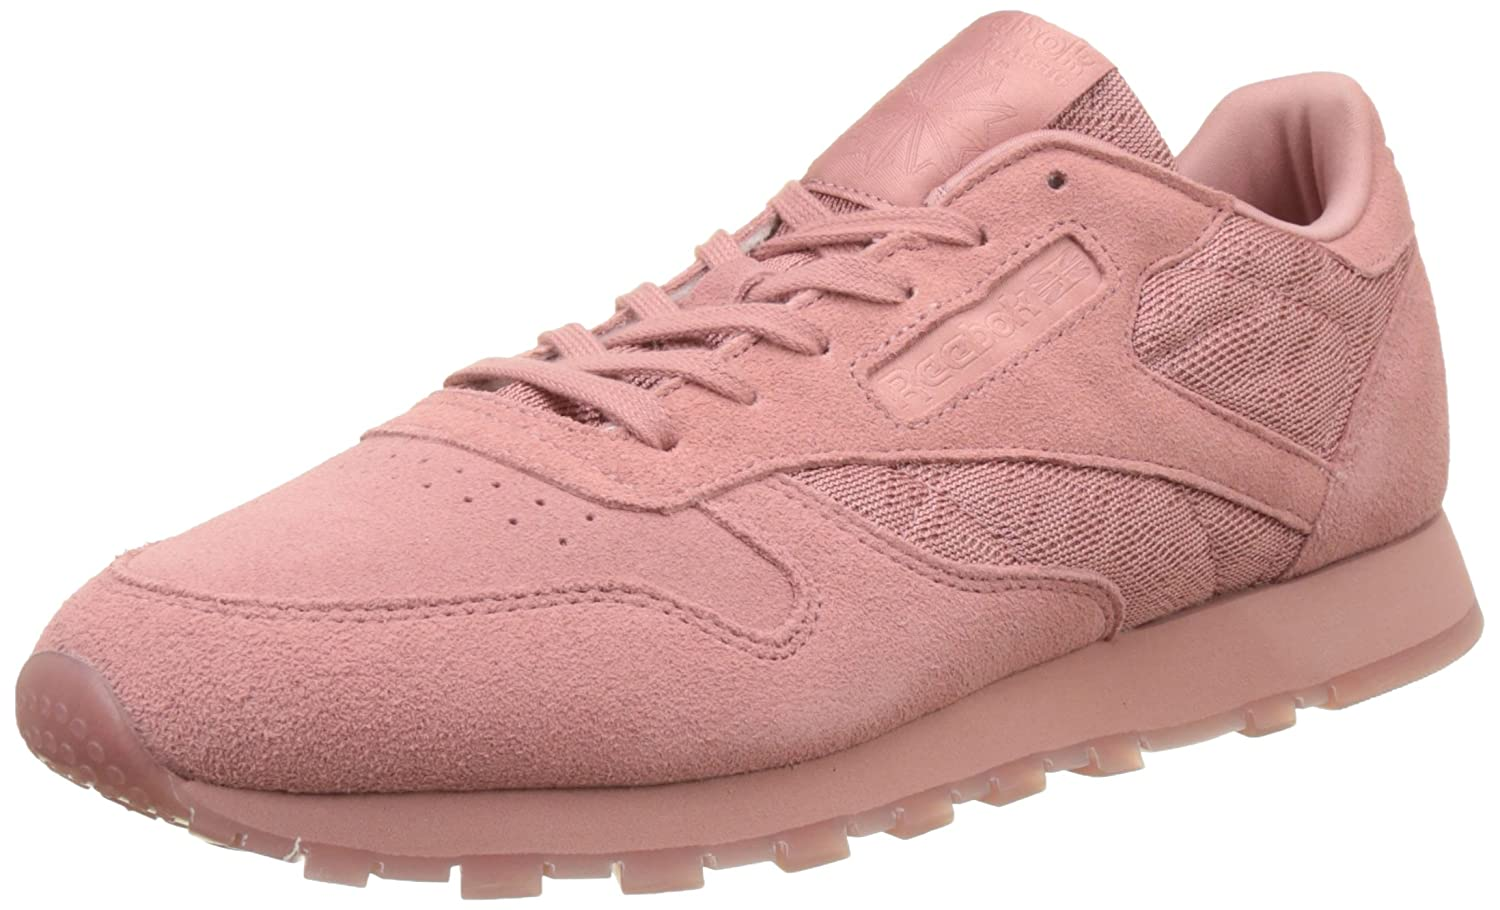 8ae409997a8da Reebok Women s Classic Leather Lace Trainers  Amazon.co.uk  Shoes   Bags